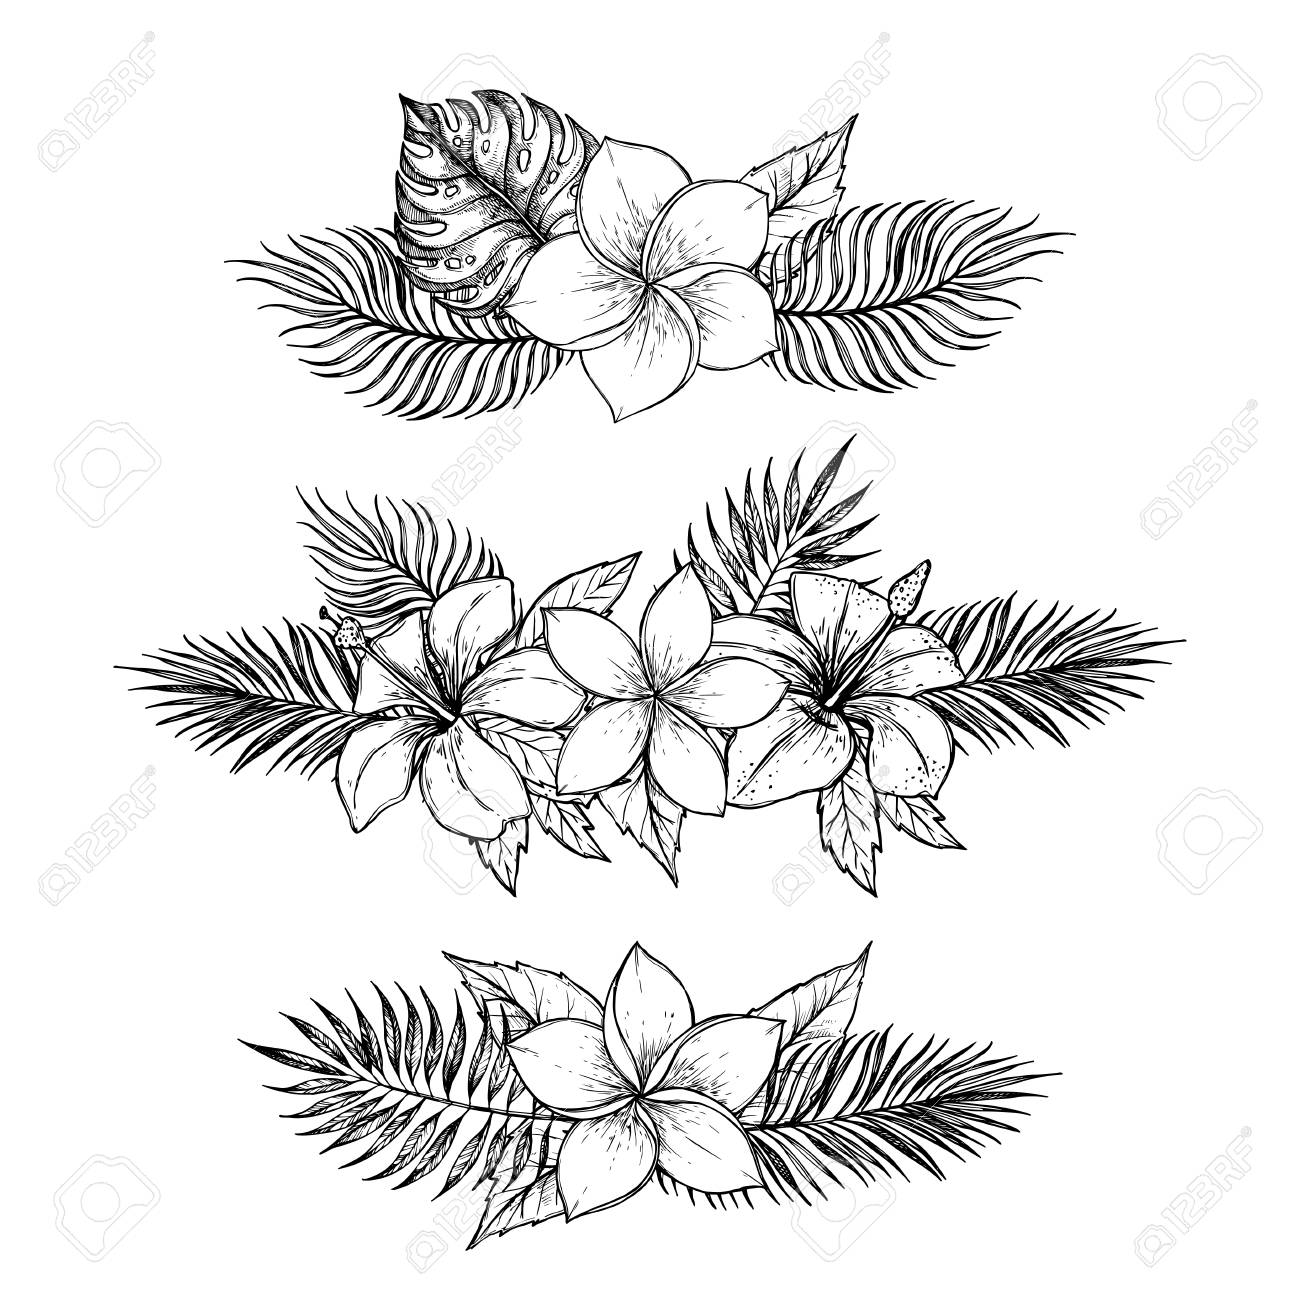 Hand Drawn Vector Illustrations Bouquets Of Tropical Flowers Royalty Free Cliparts Vectors And Stock Illustration Image 78565621